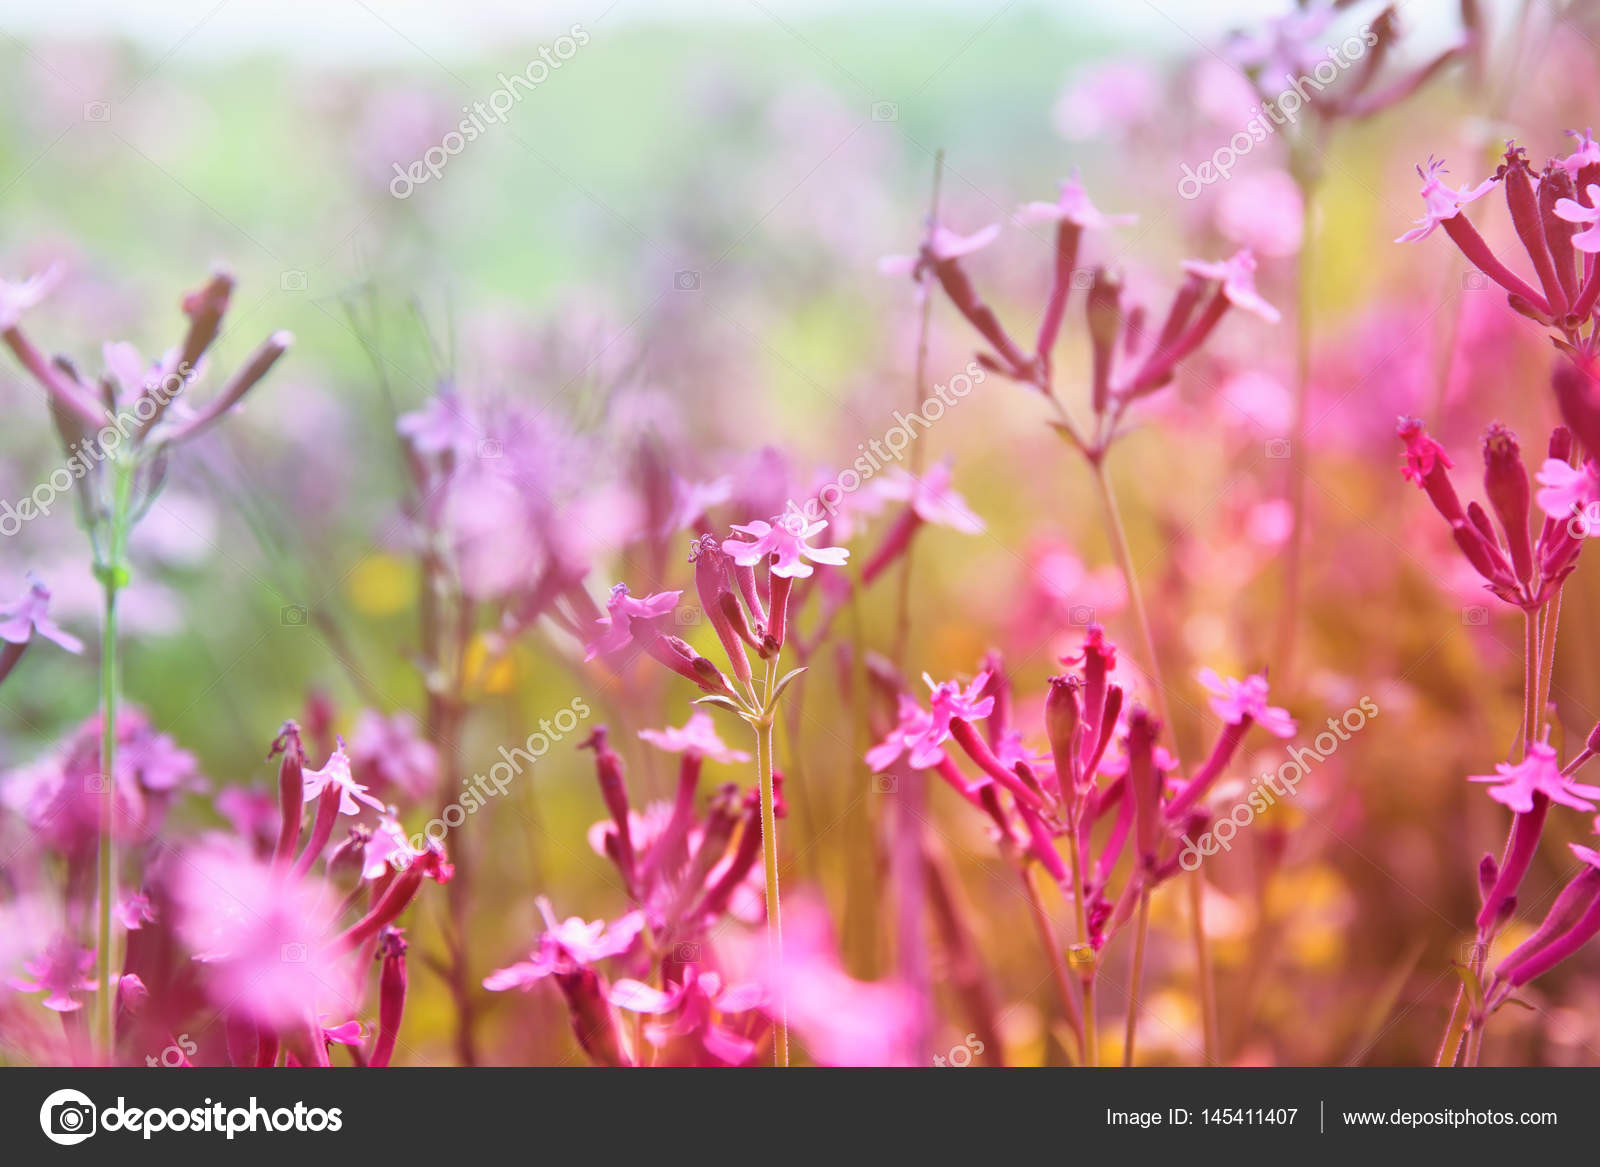 Abstract dreamy photo of spring wildflowers stock photo tomert abstract dreamy photo of spring meadow with wildflowers photo by tomert mightylinksfo